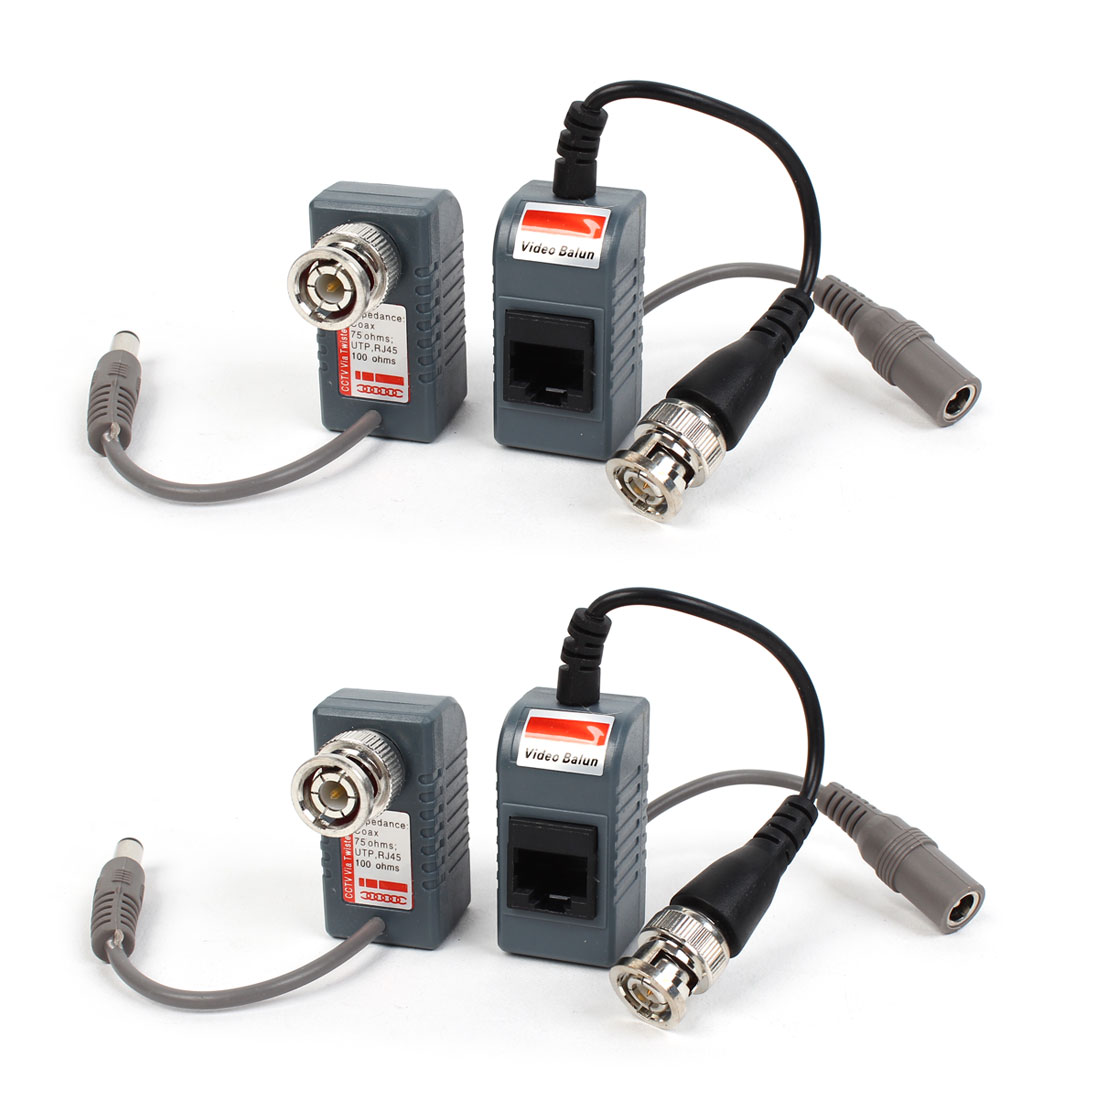 2 Pair BNC Male to RJ45 DC Power Converter Audio Video Balun for CCTV PTZ Camera